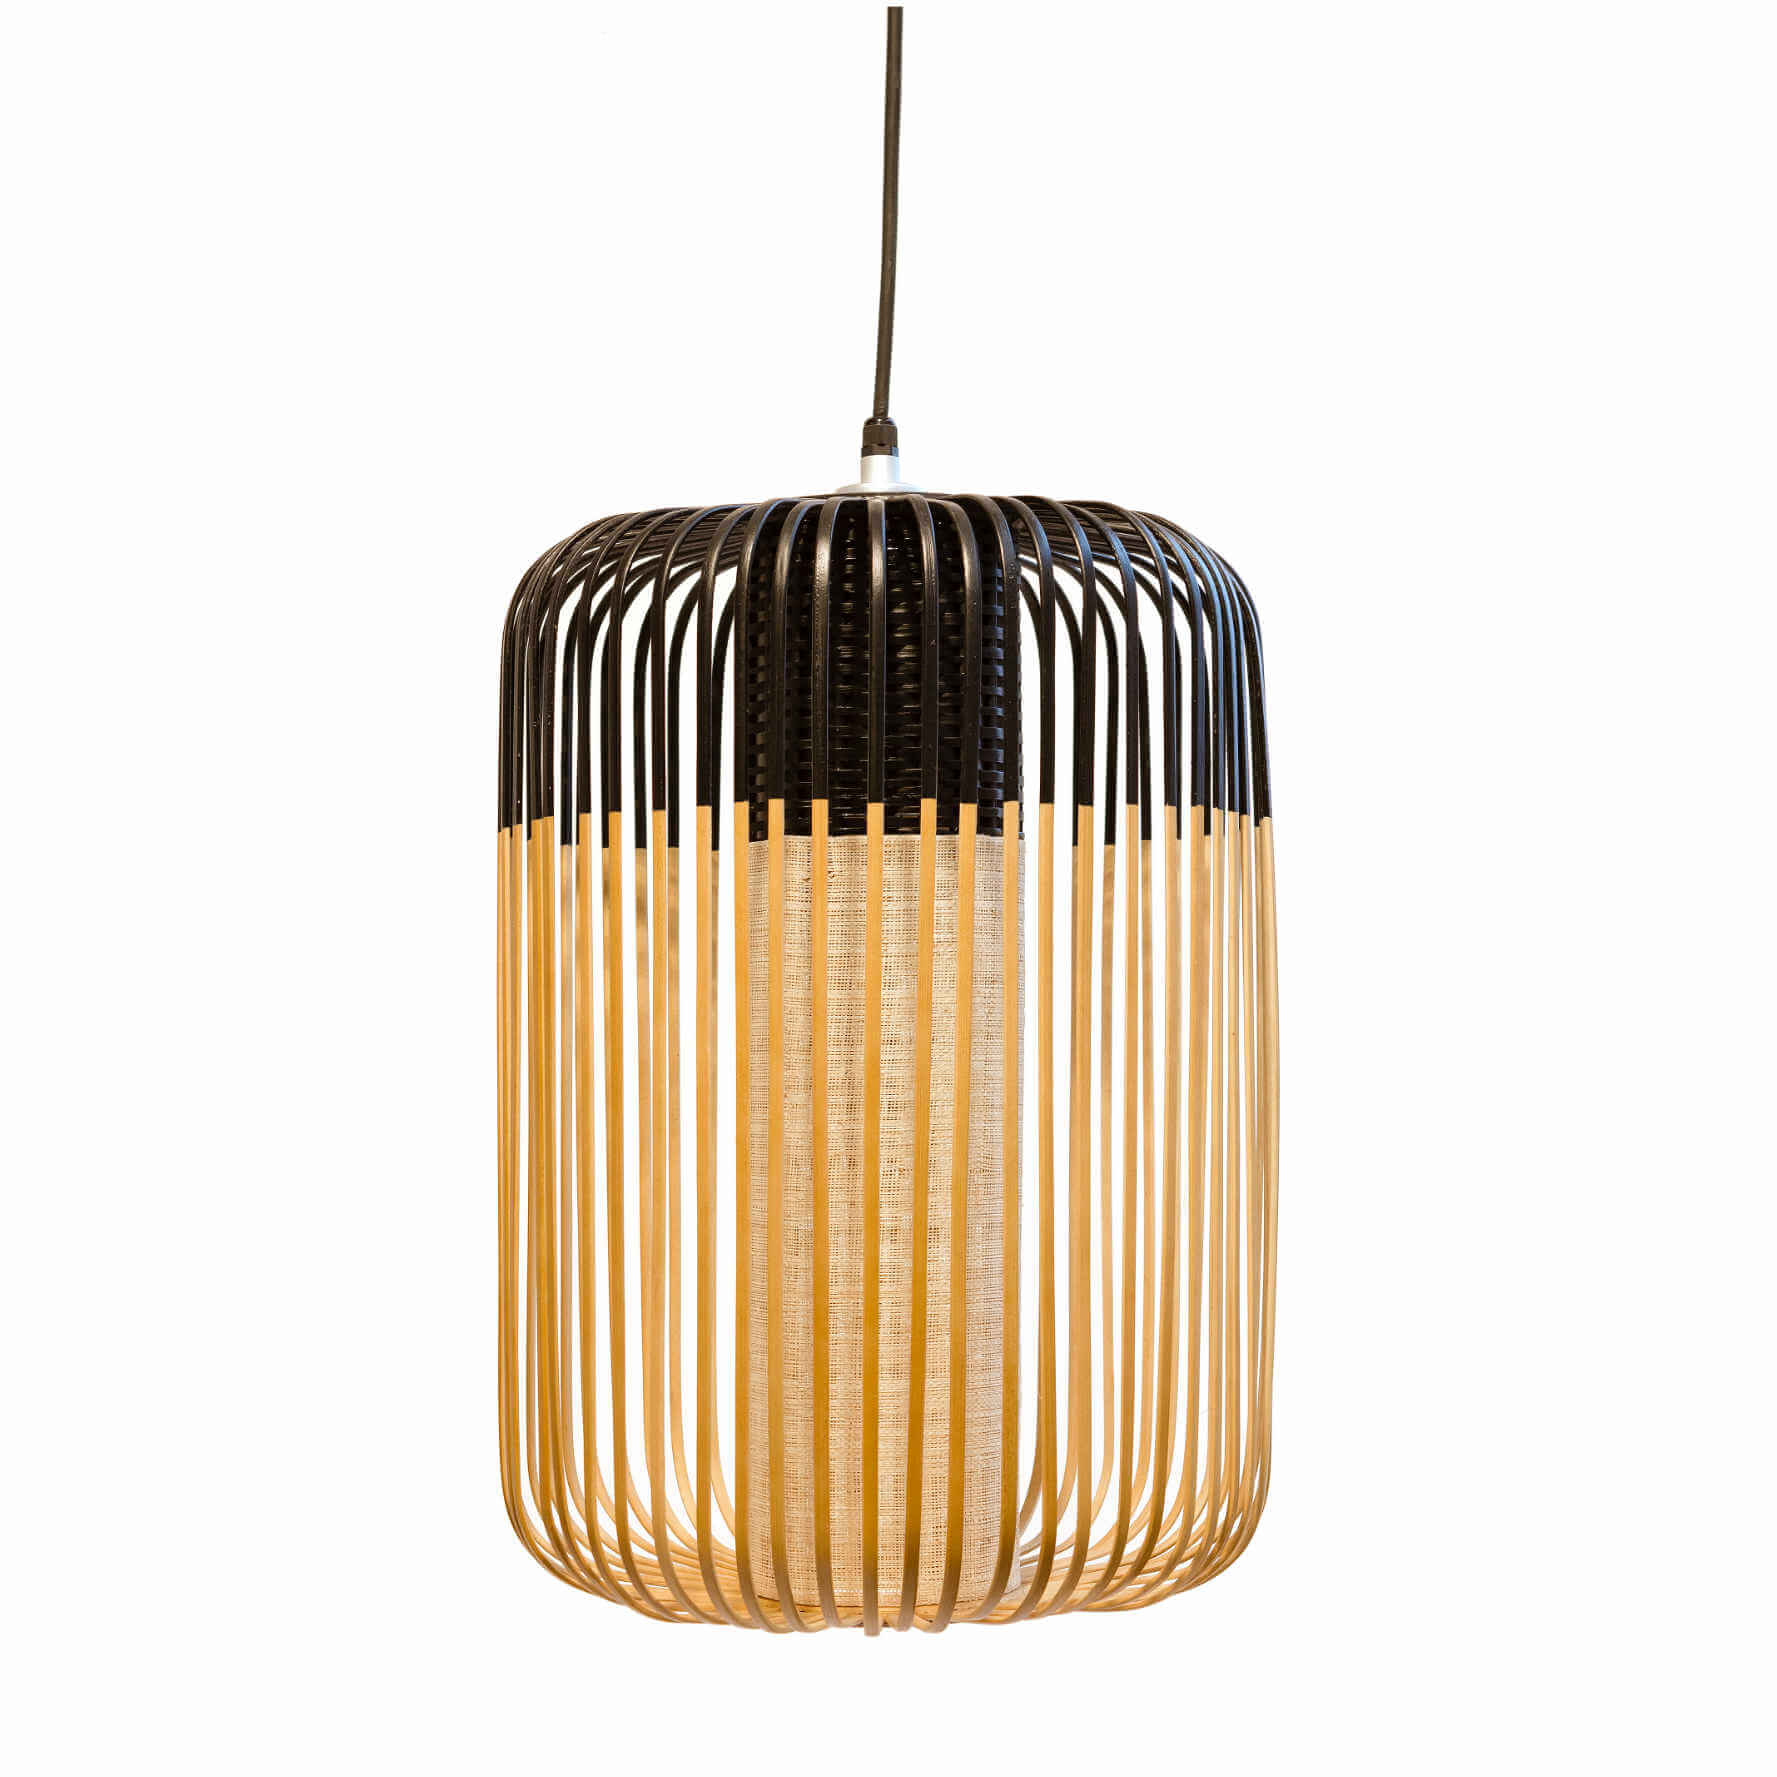 Suspension Bamboo noire S - Le Forestier